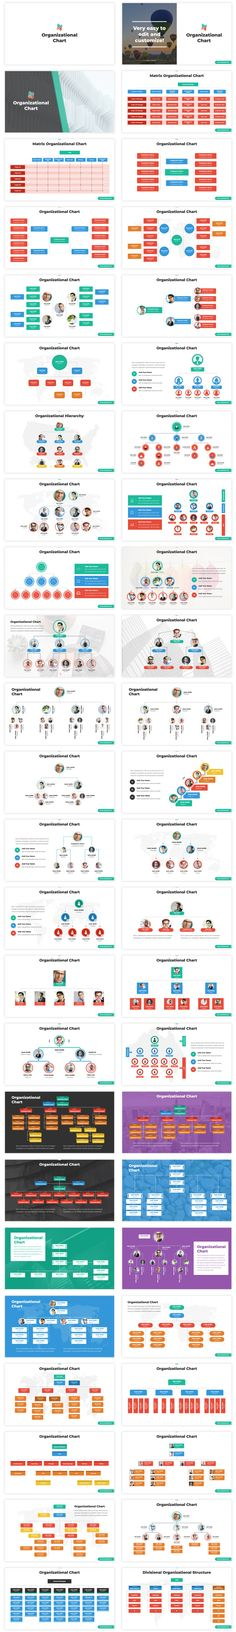 Awesome collection of Organizational Charts and Hierarchy Charts slides, all of them are easy to edit and customize. Save your time and buy this ready to use template that contains more than 100 modern and colorful slides with a great collection of org charts. it comes with 3 ready to use colors themes each one with two backgrounds (Dark and Light). We included two high-quality ready to print versions (A4 and US Letter) /300DPI/ Marketing Presentation, Business Presentation Templates, Presentation Layout, Business Templates, Powerpoint Design Templates, Keynote Template, Keynote Design, Organizational Chart, Infographic Templates